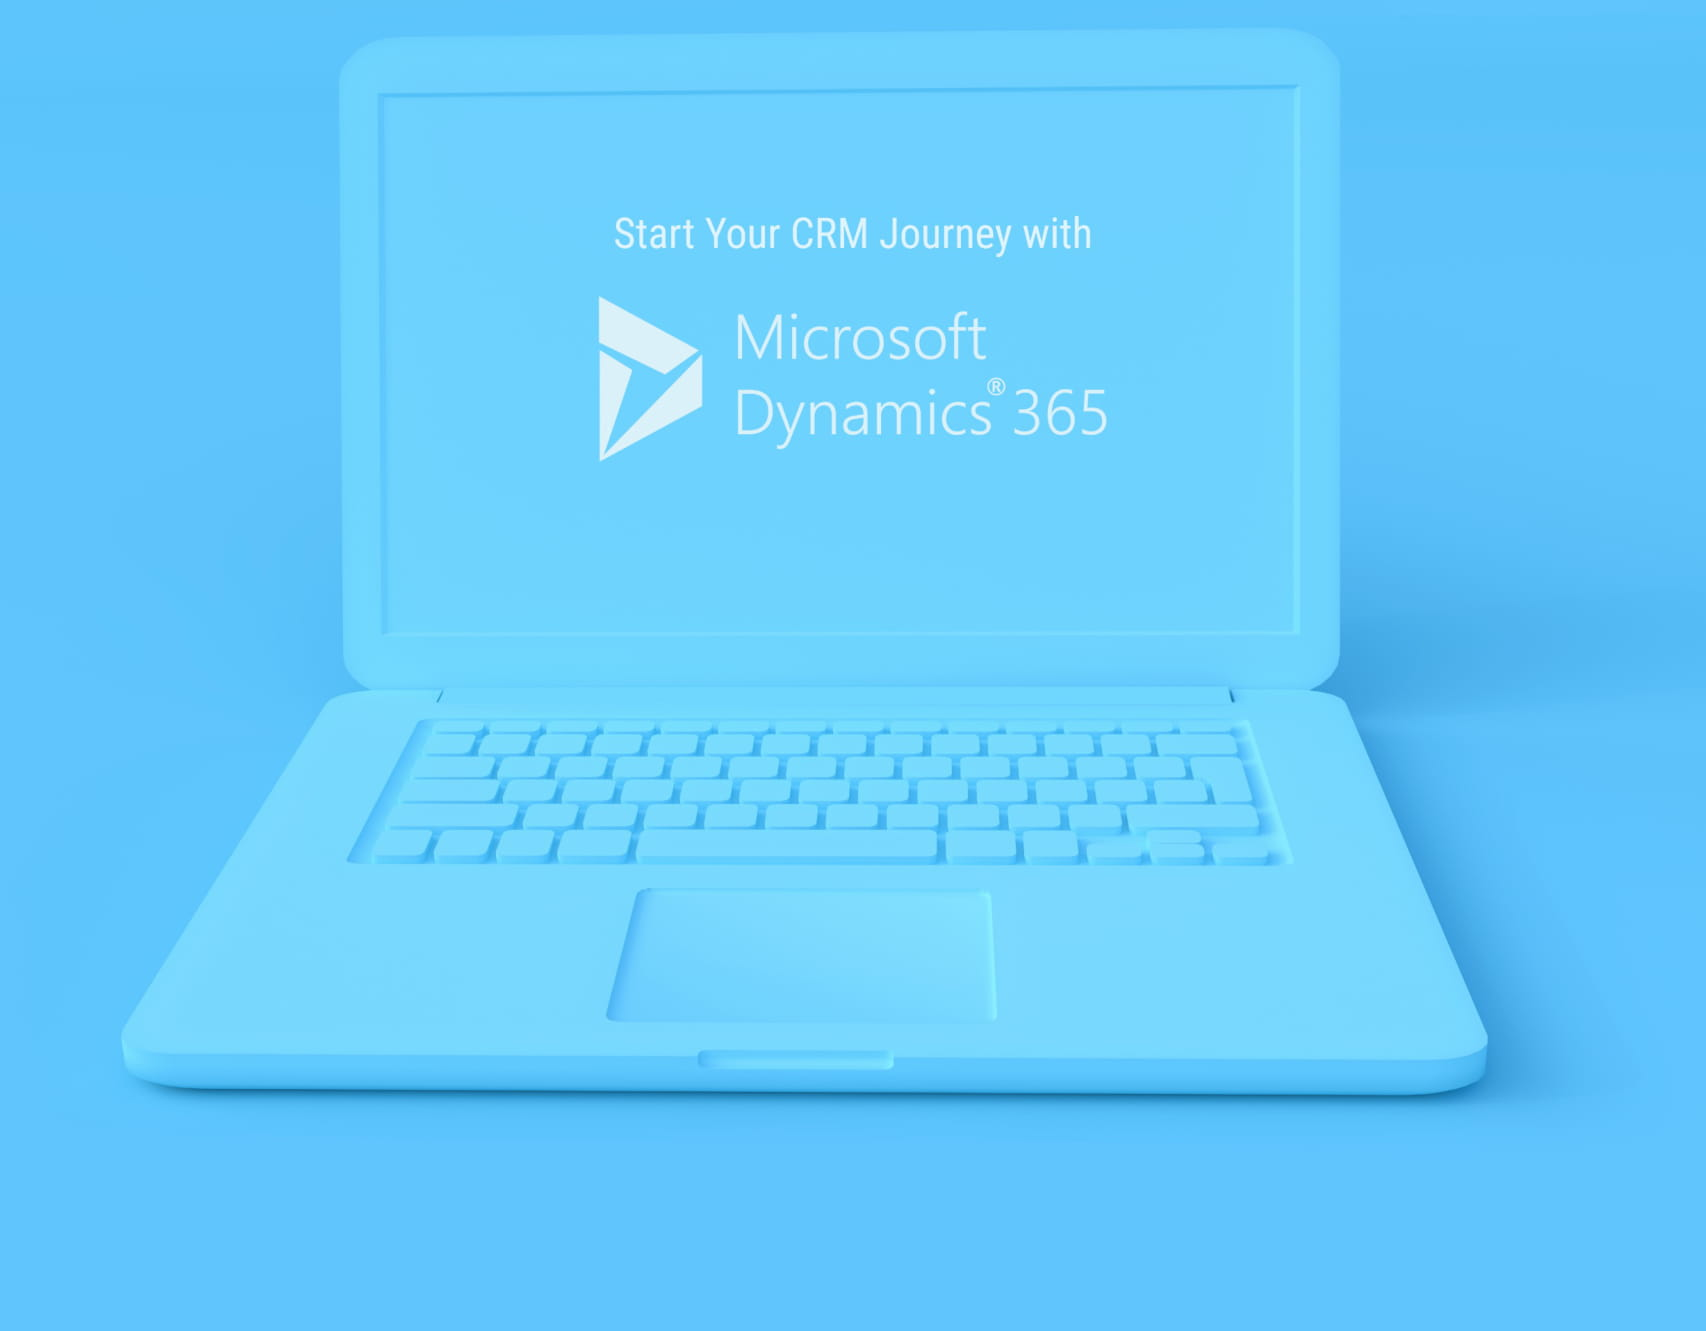 Implementing Dynamics 365